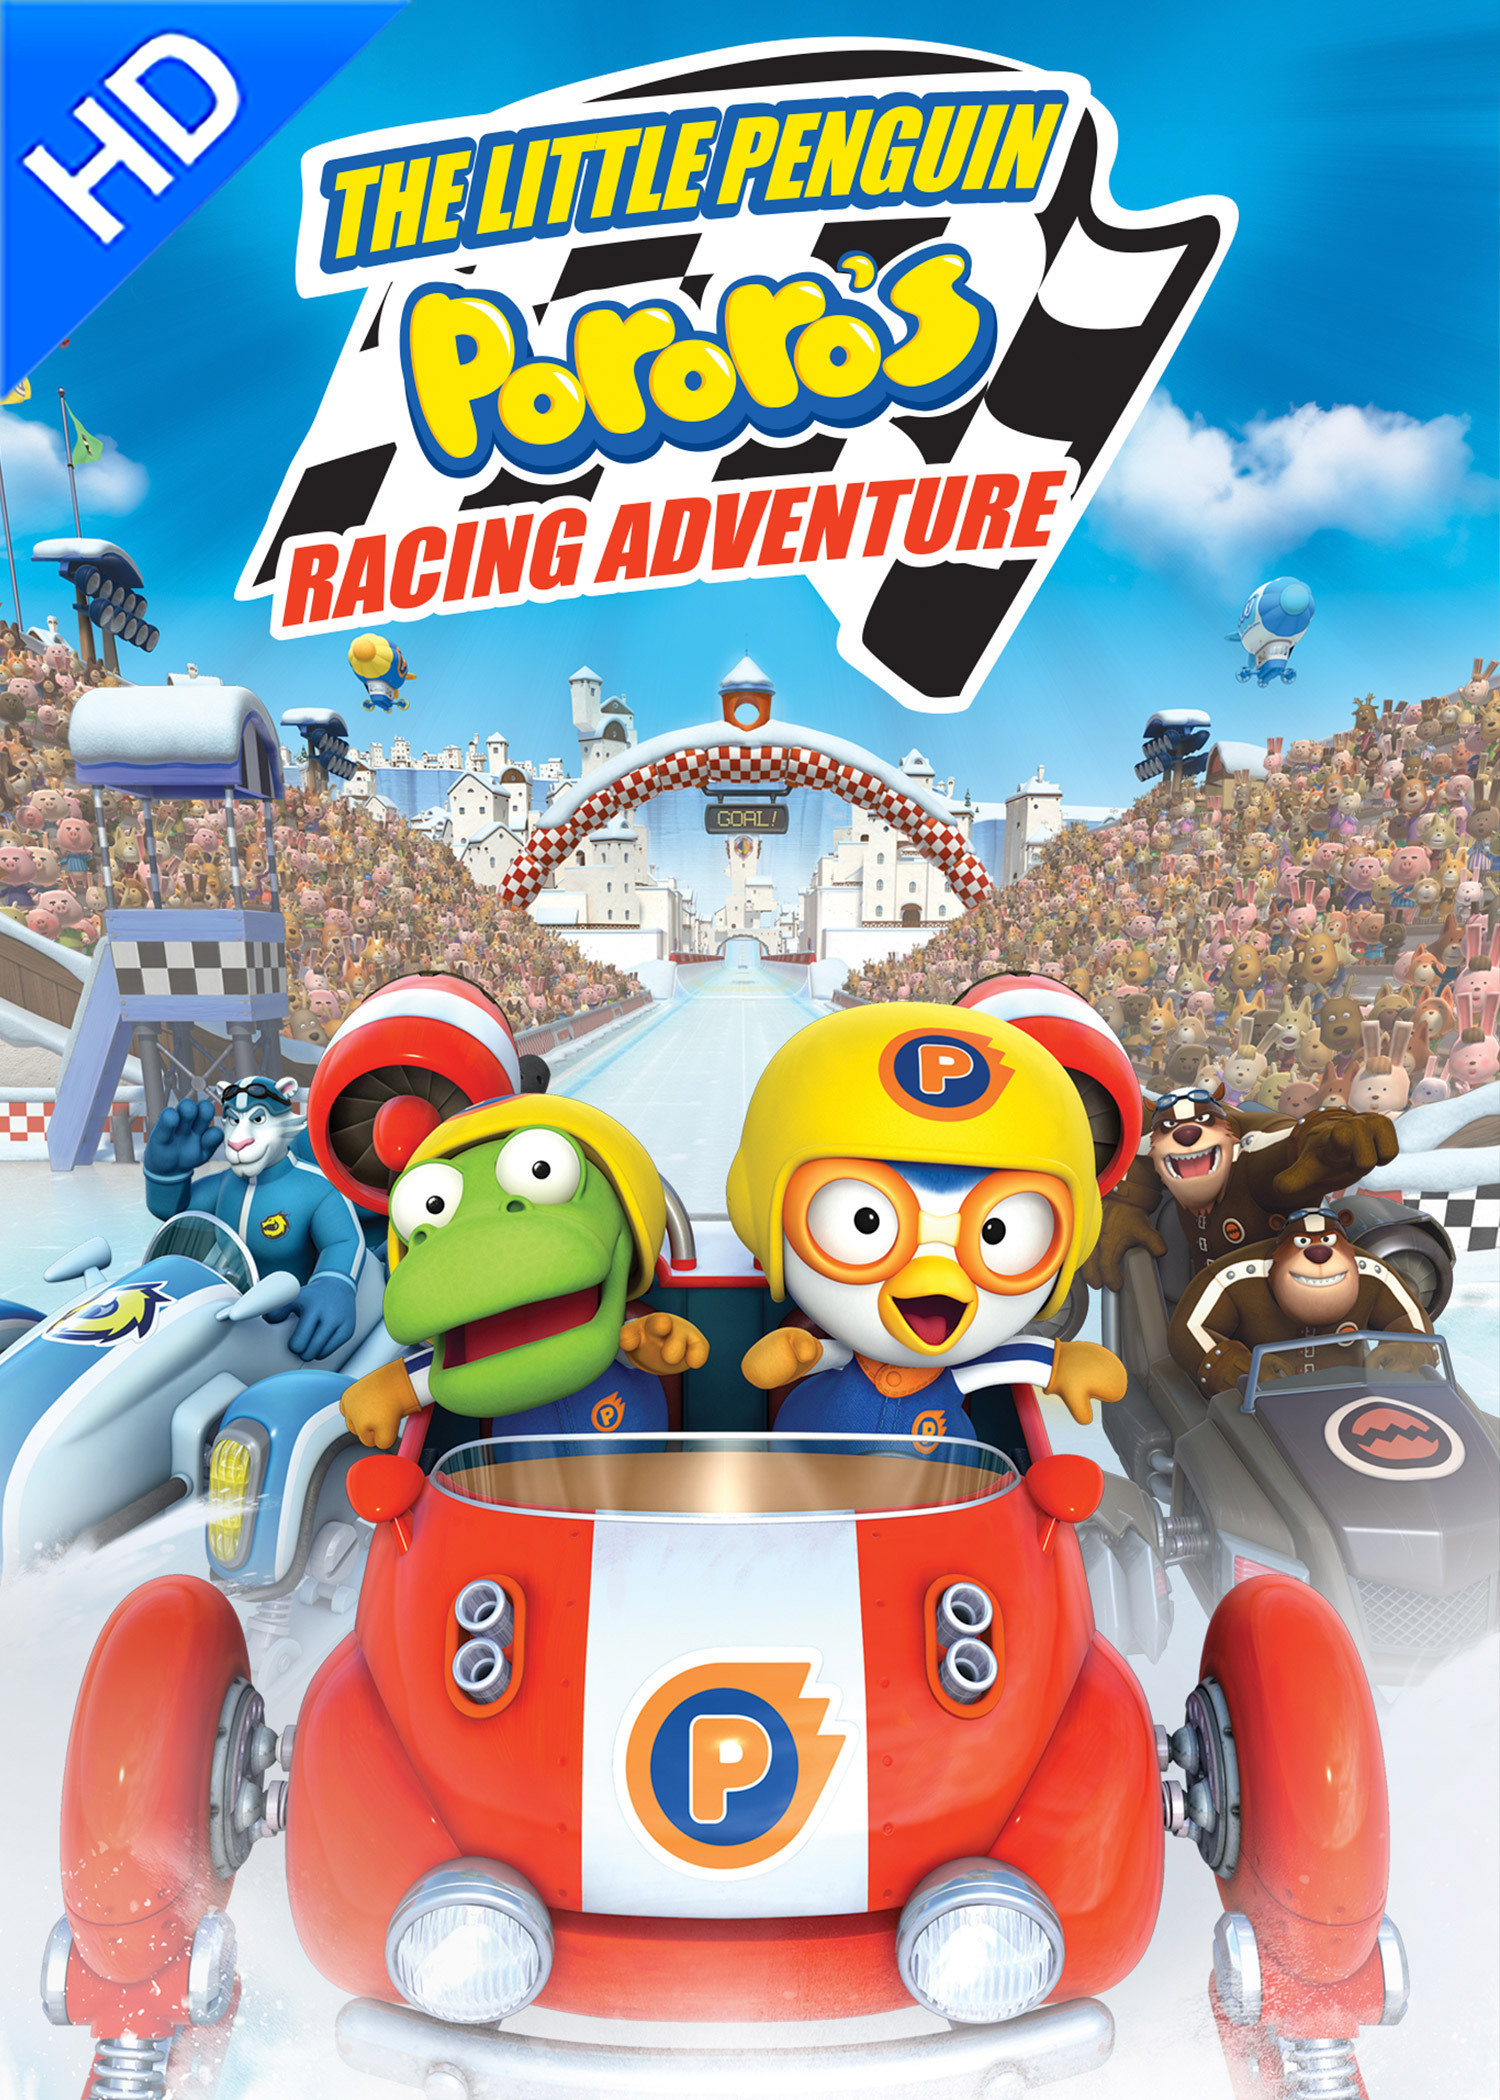 the-little-penguin-pororo-racing-adventure